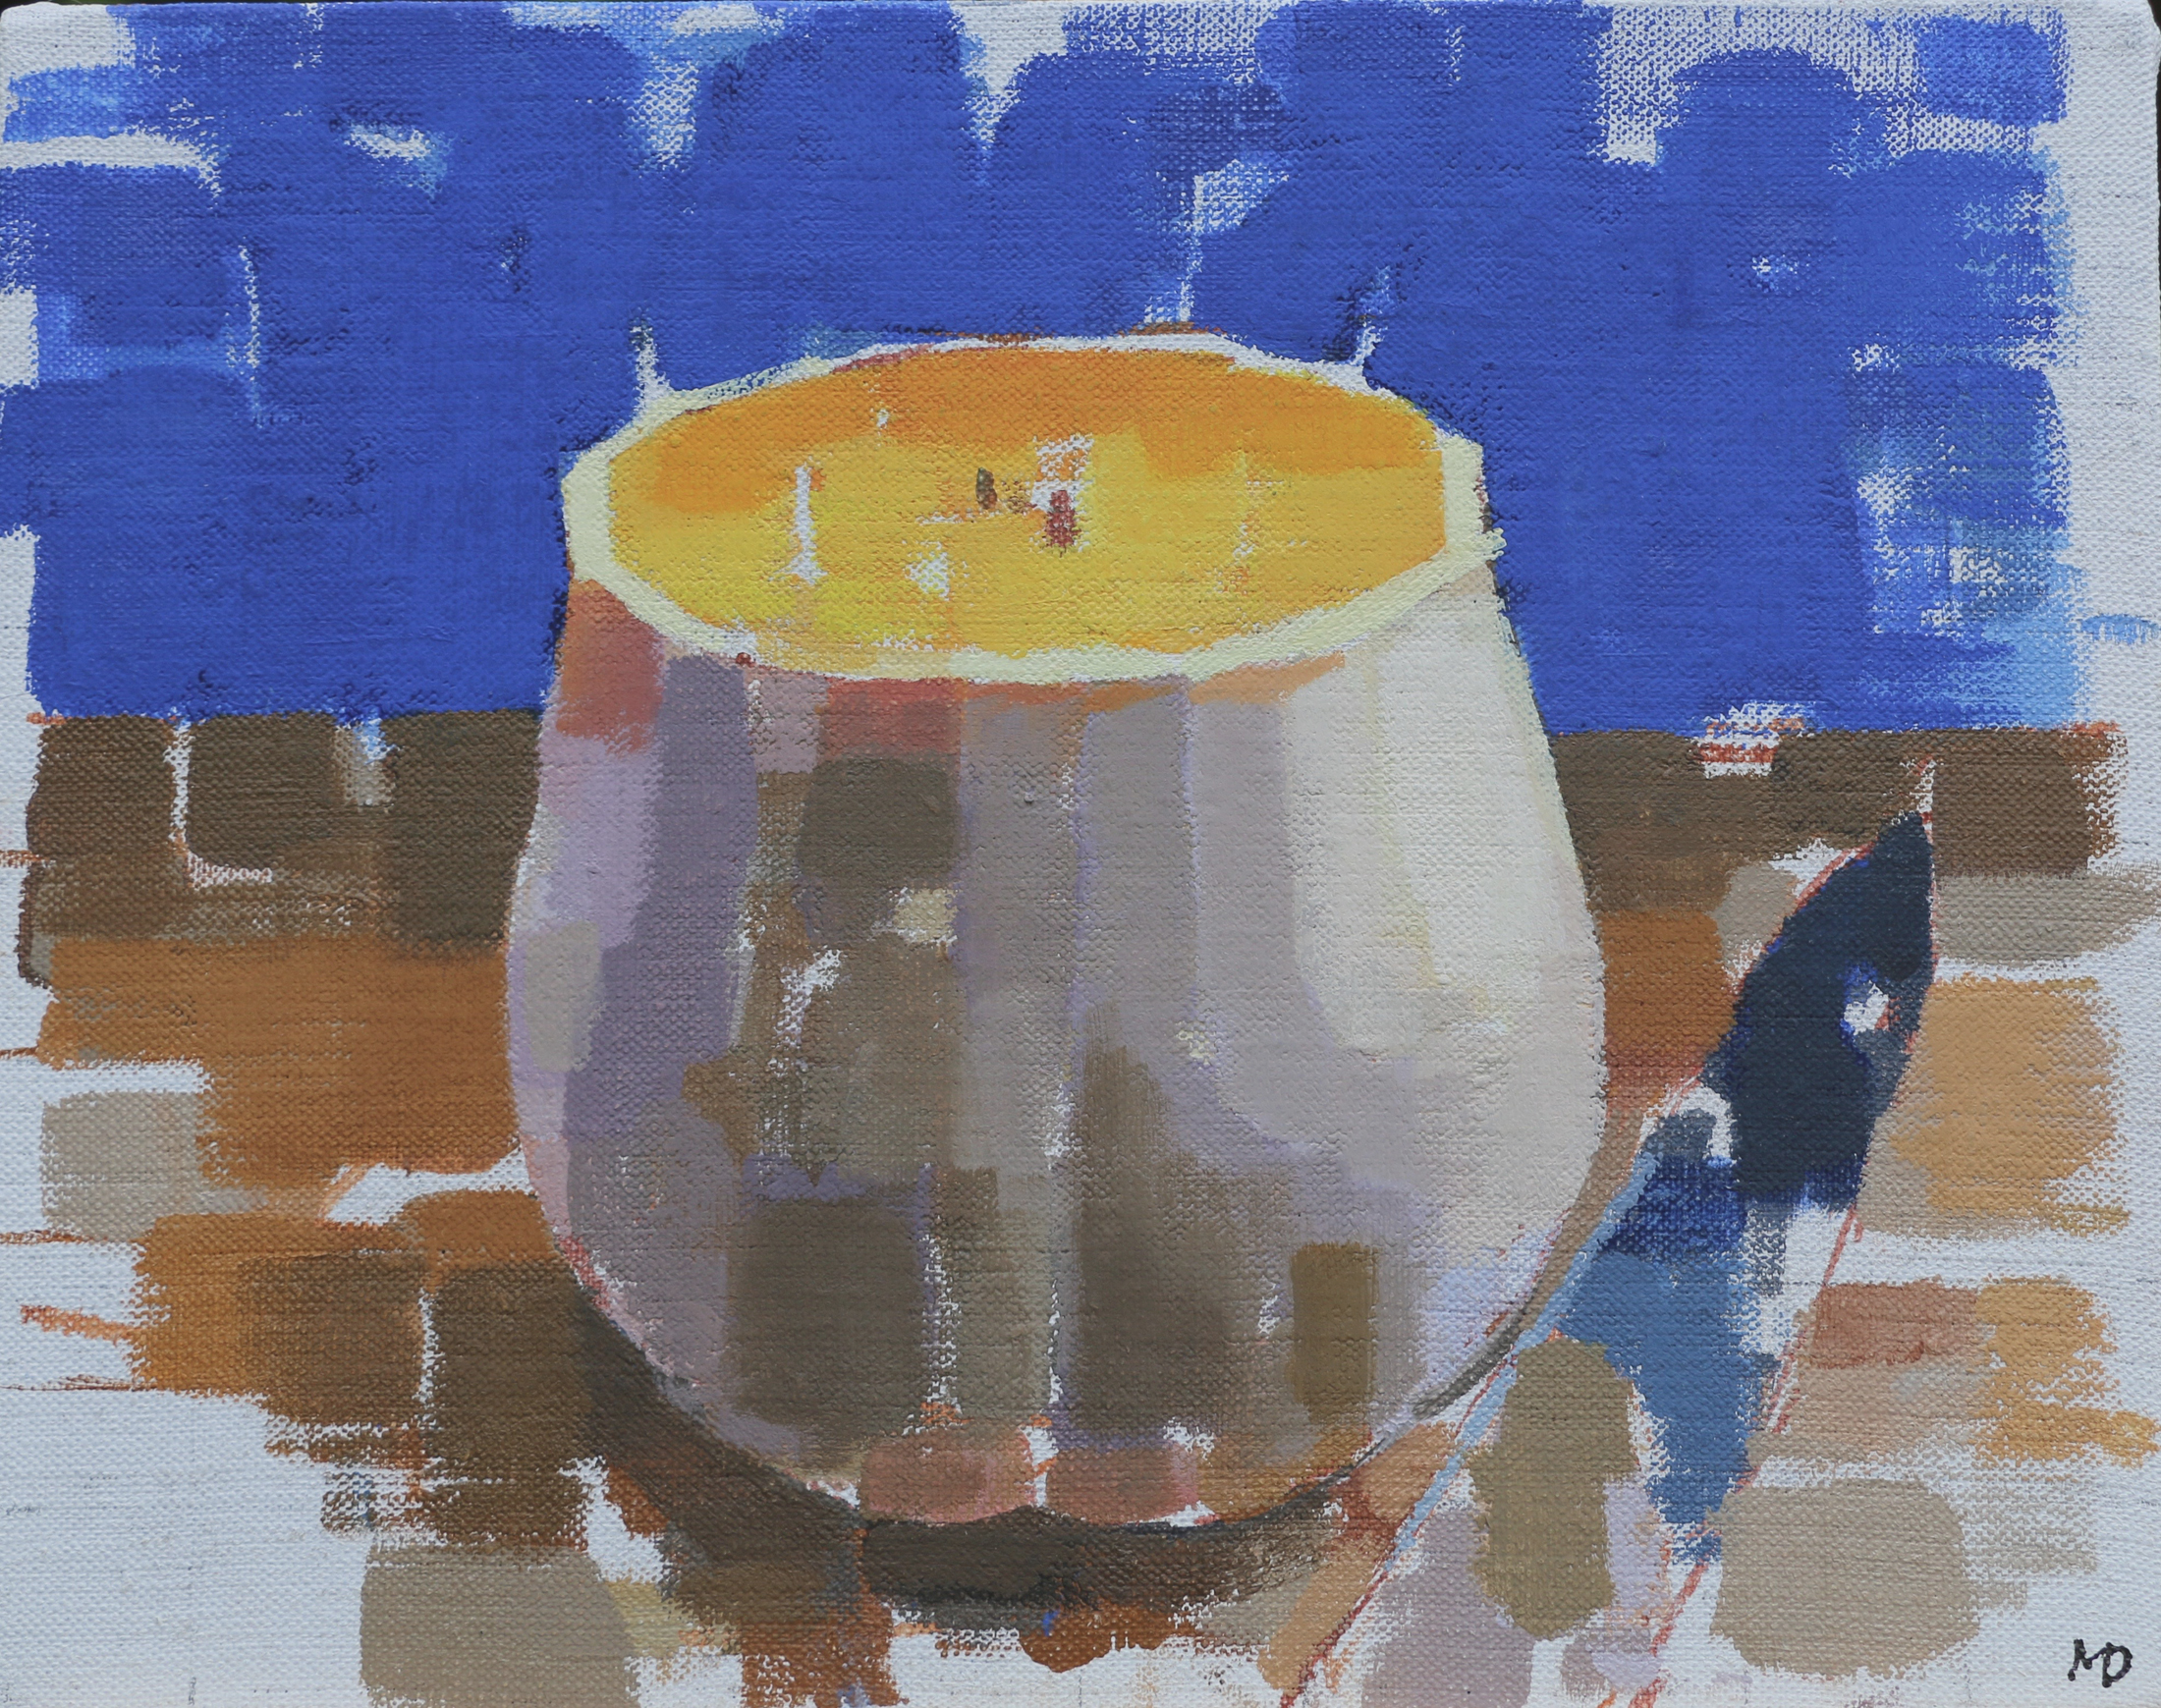 Squash and knife  Oil on Canvas  10 x 8 inches